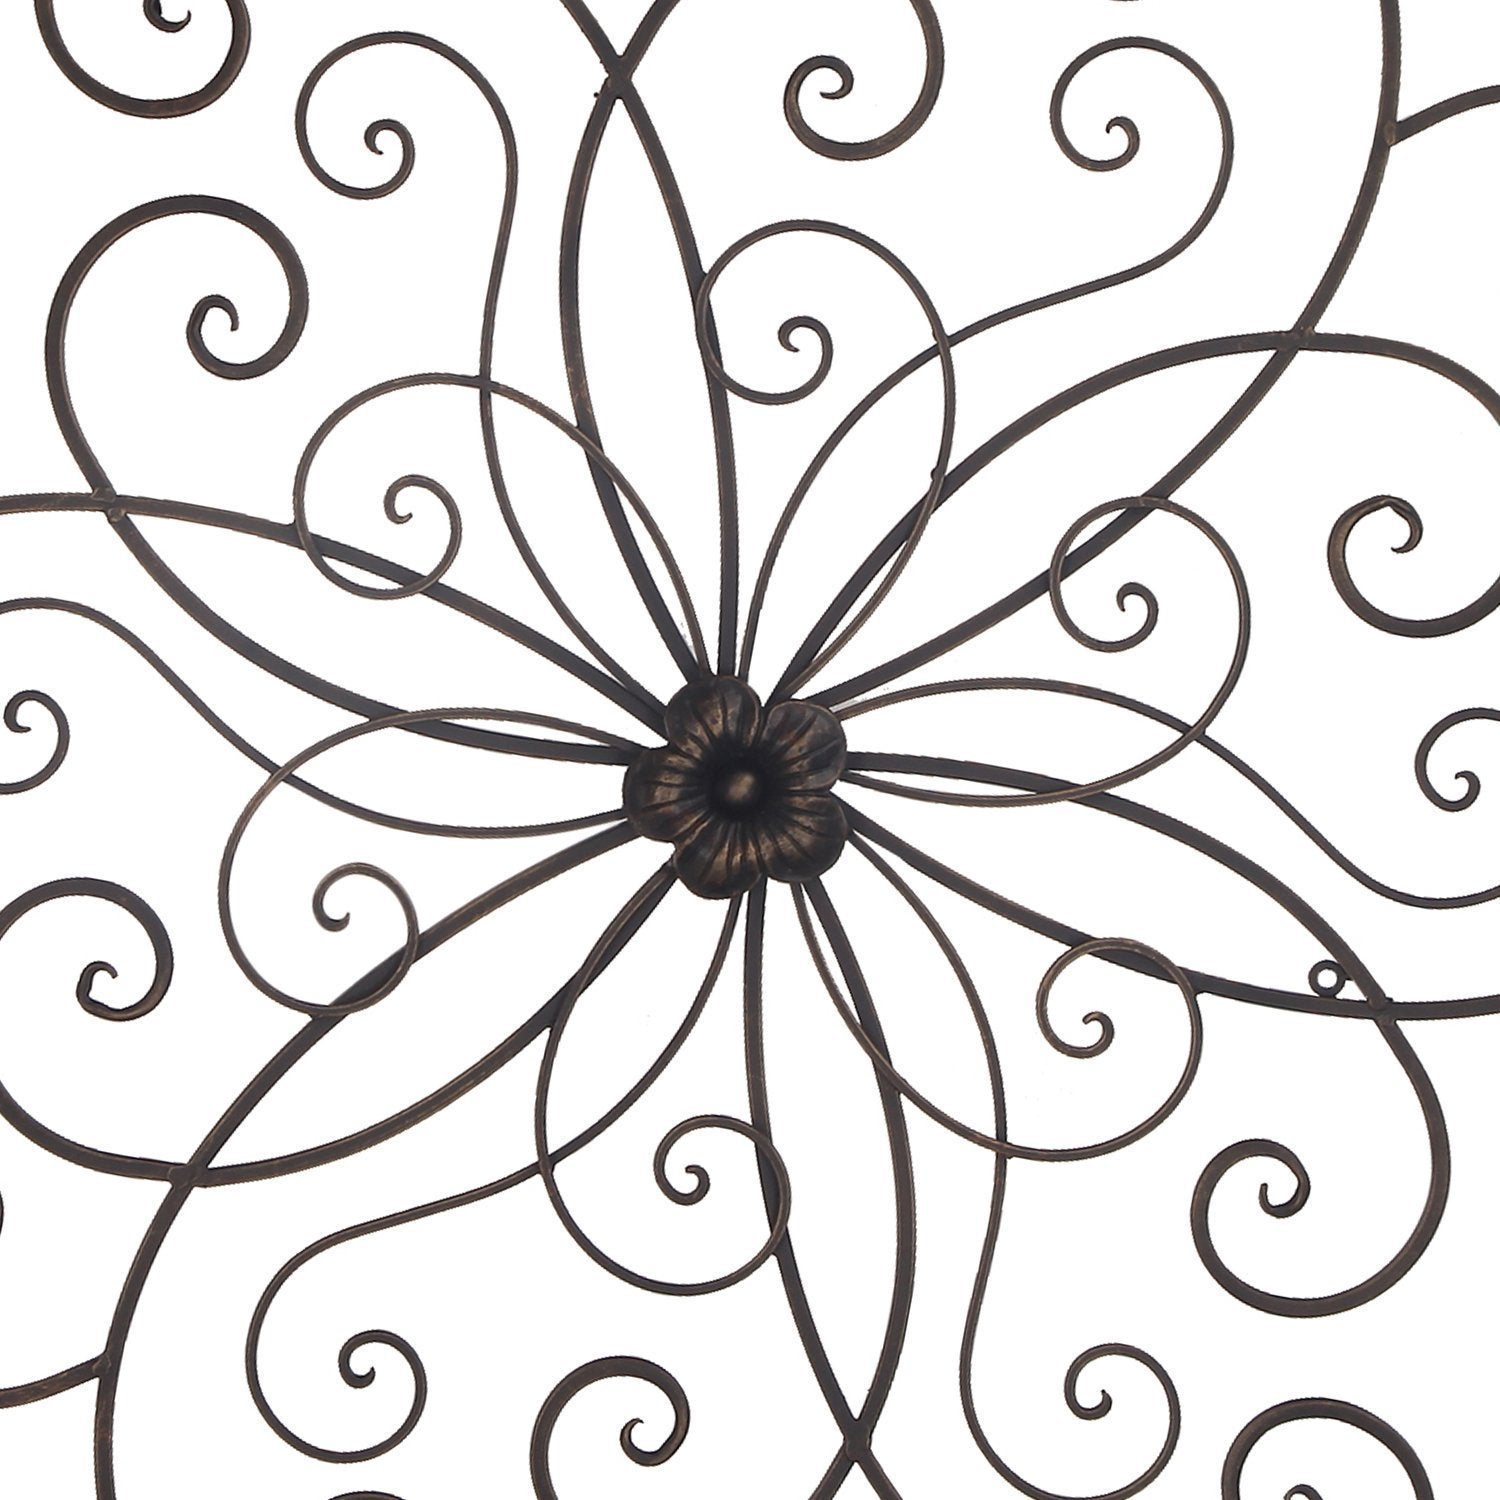 Shop Adeco Bronze Flower Urban Design Metal Wall Decor For Nature Throughout Most Popular Flower Urban Design Metal Wall Decor (Gallery 17 of 20)